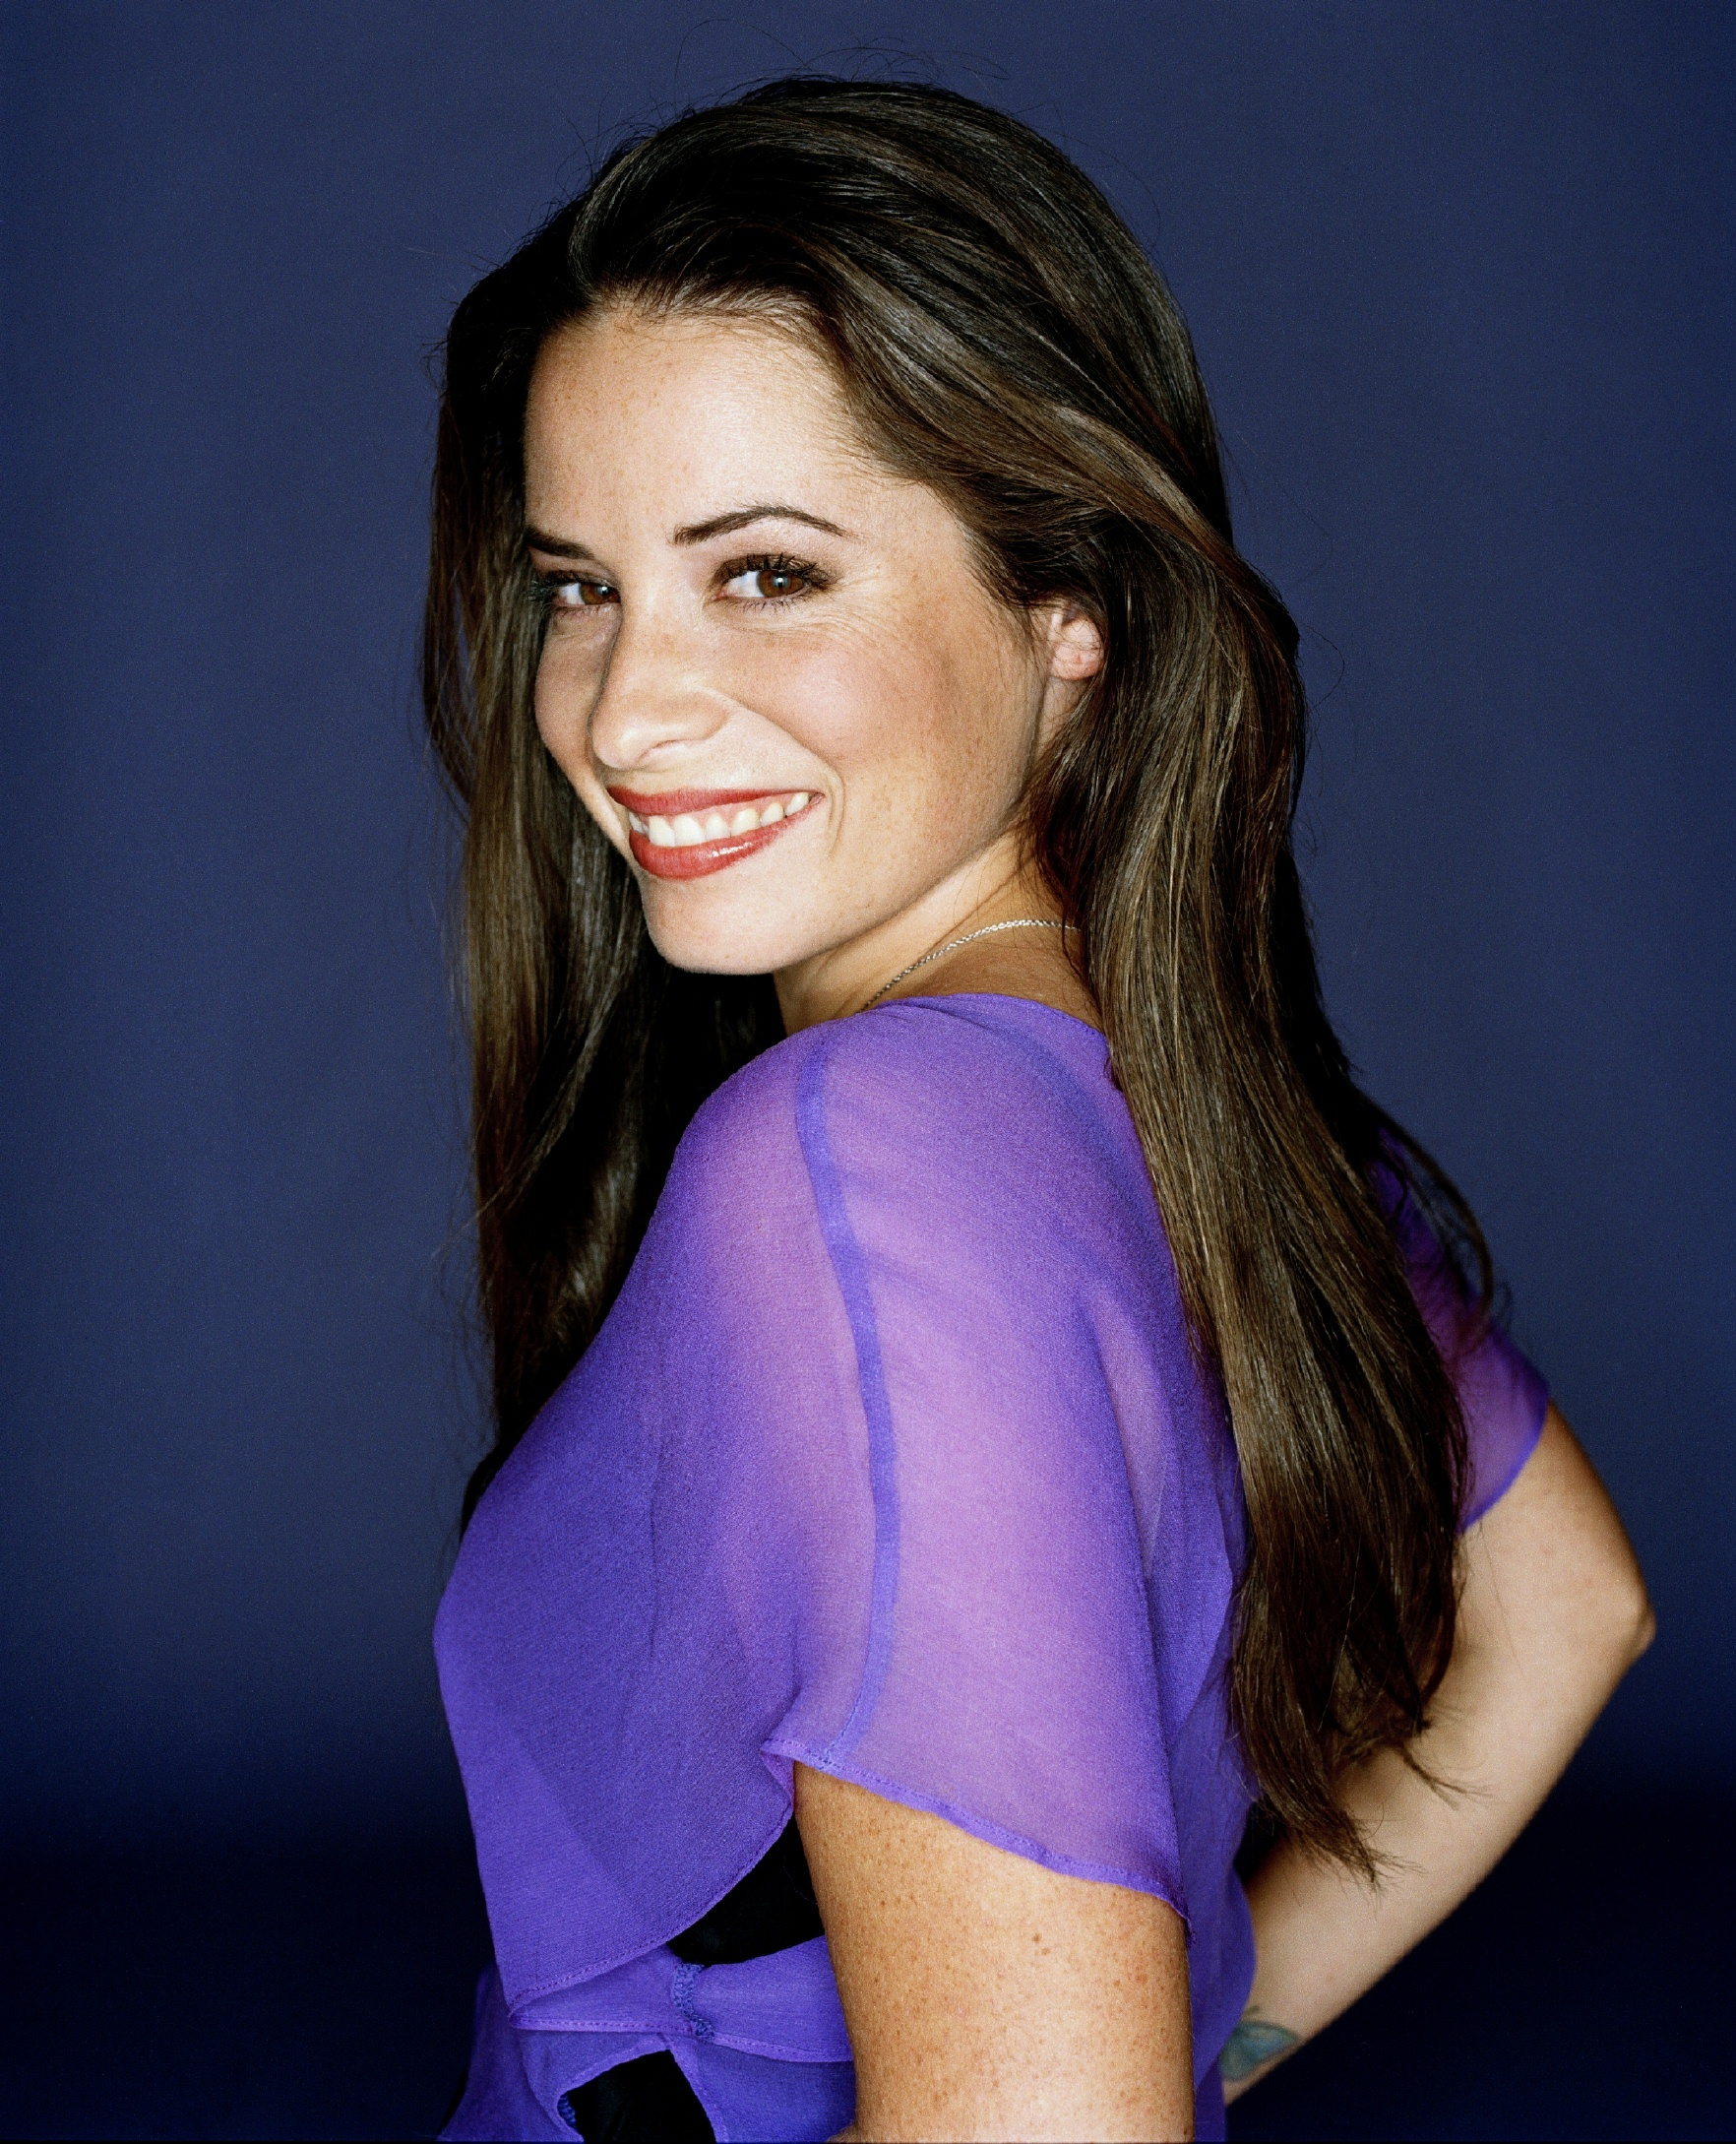 holly marie combs HD Wallpaper